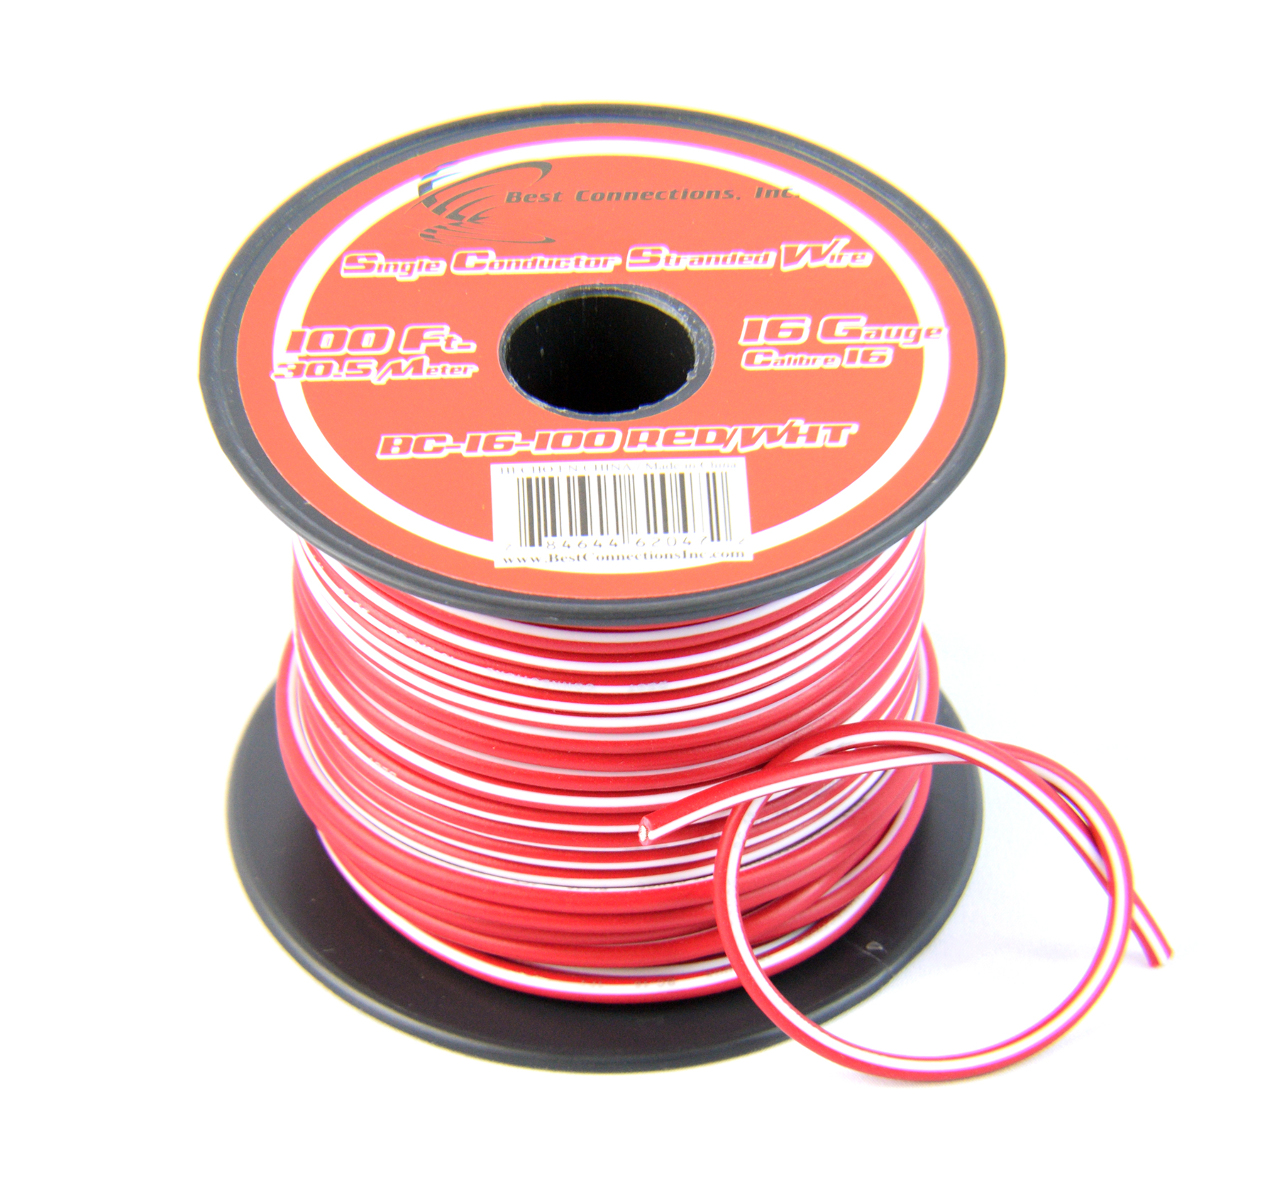 16 Gauge Red with White Stripe Tracer Wire - 100' FT